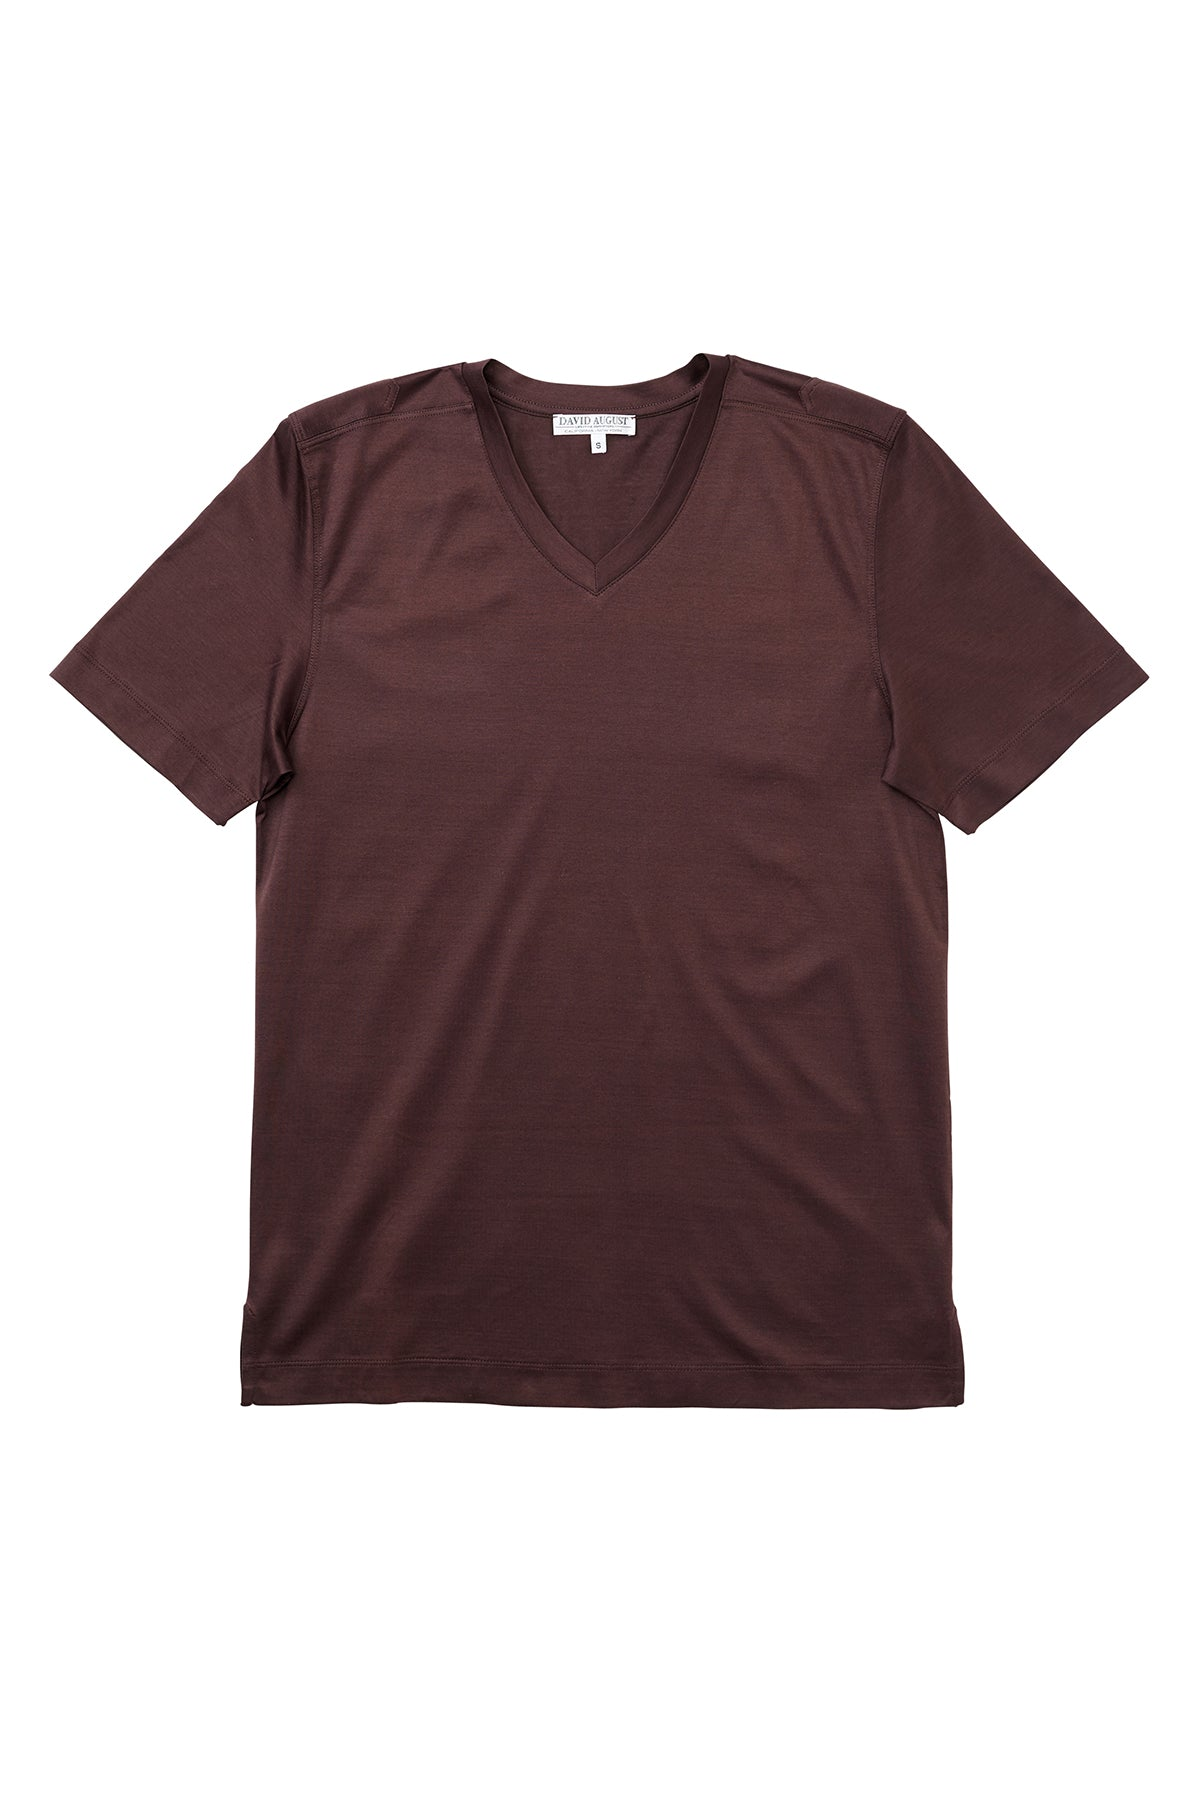 Luxury Mercerized Cotton V-Neck T-Shirt in Brown